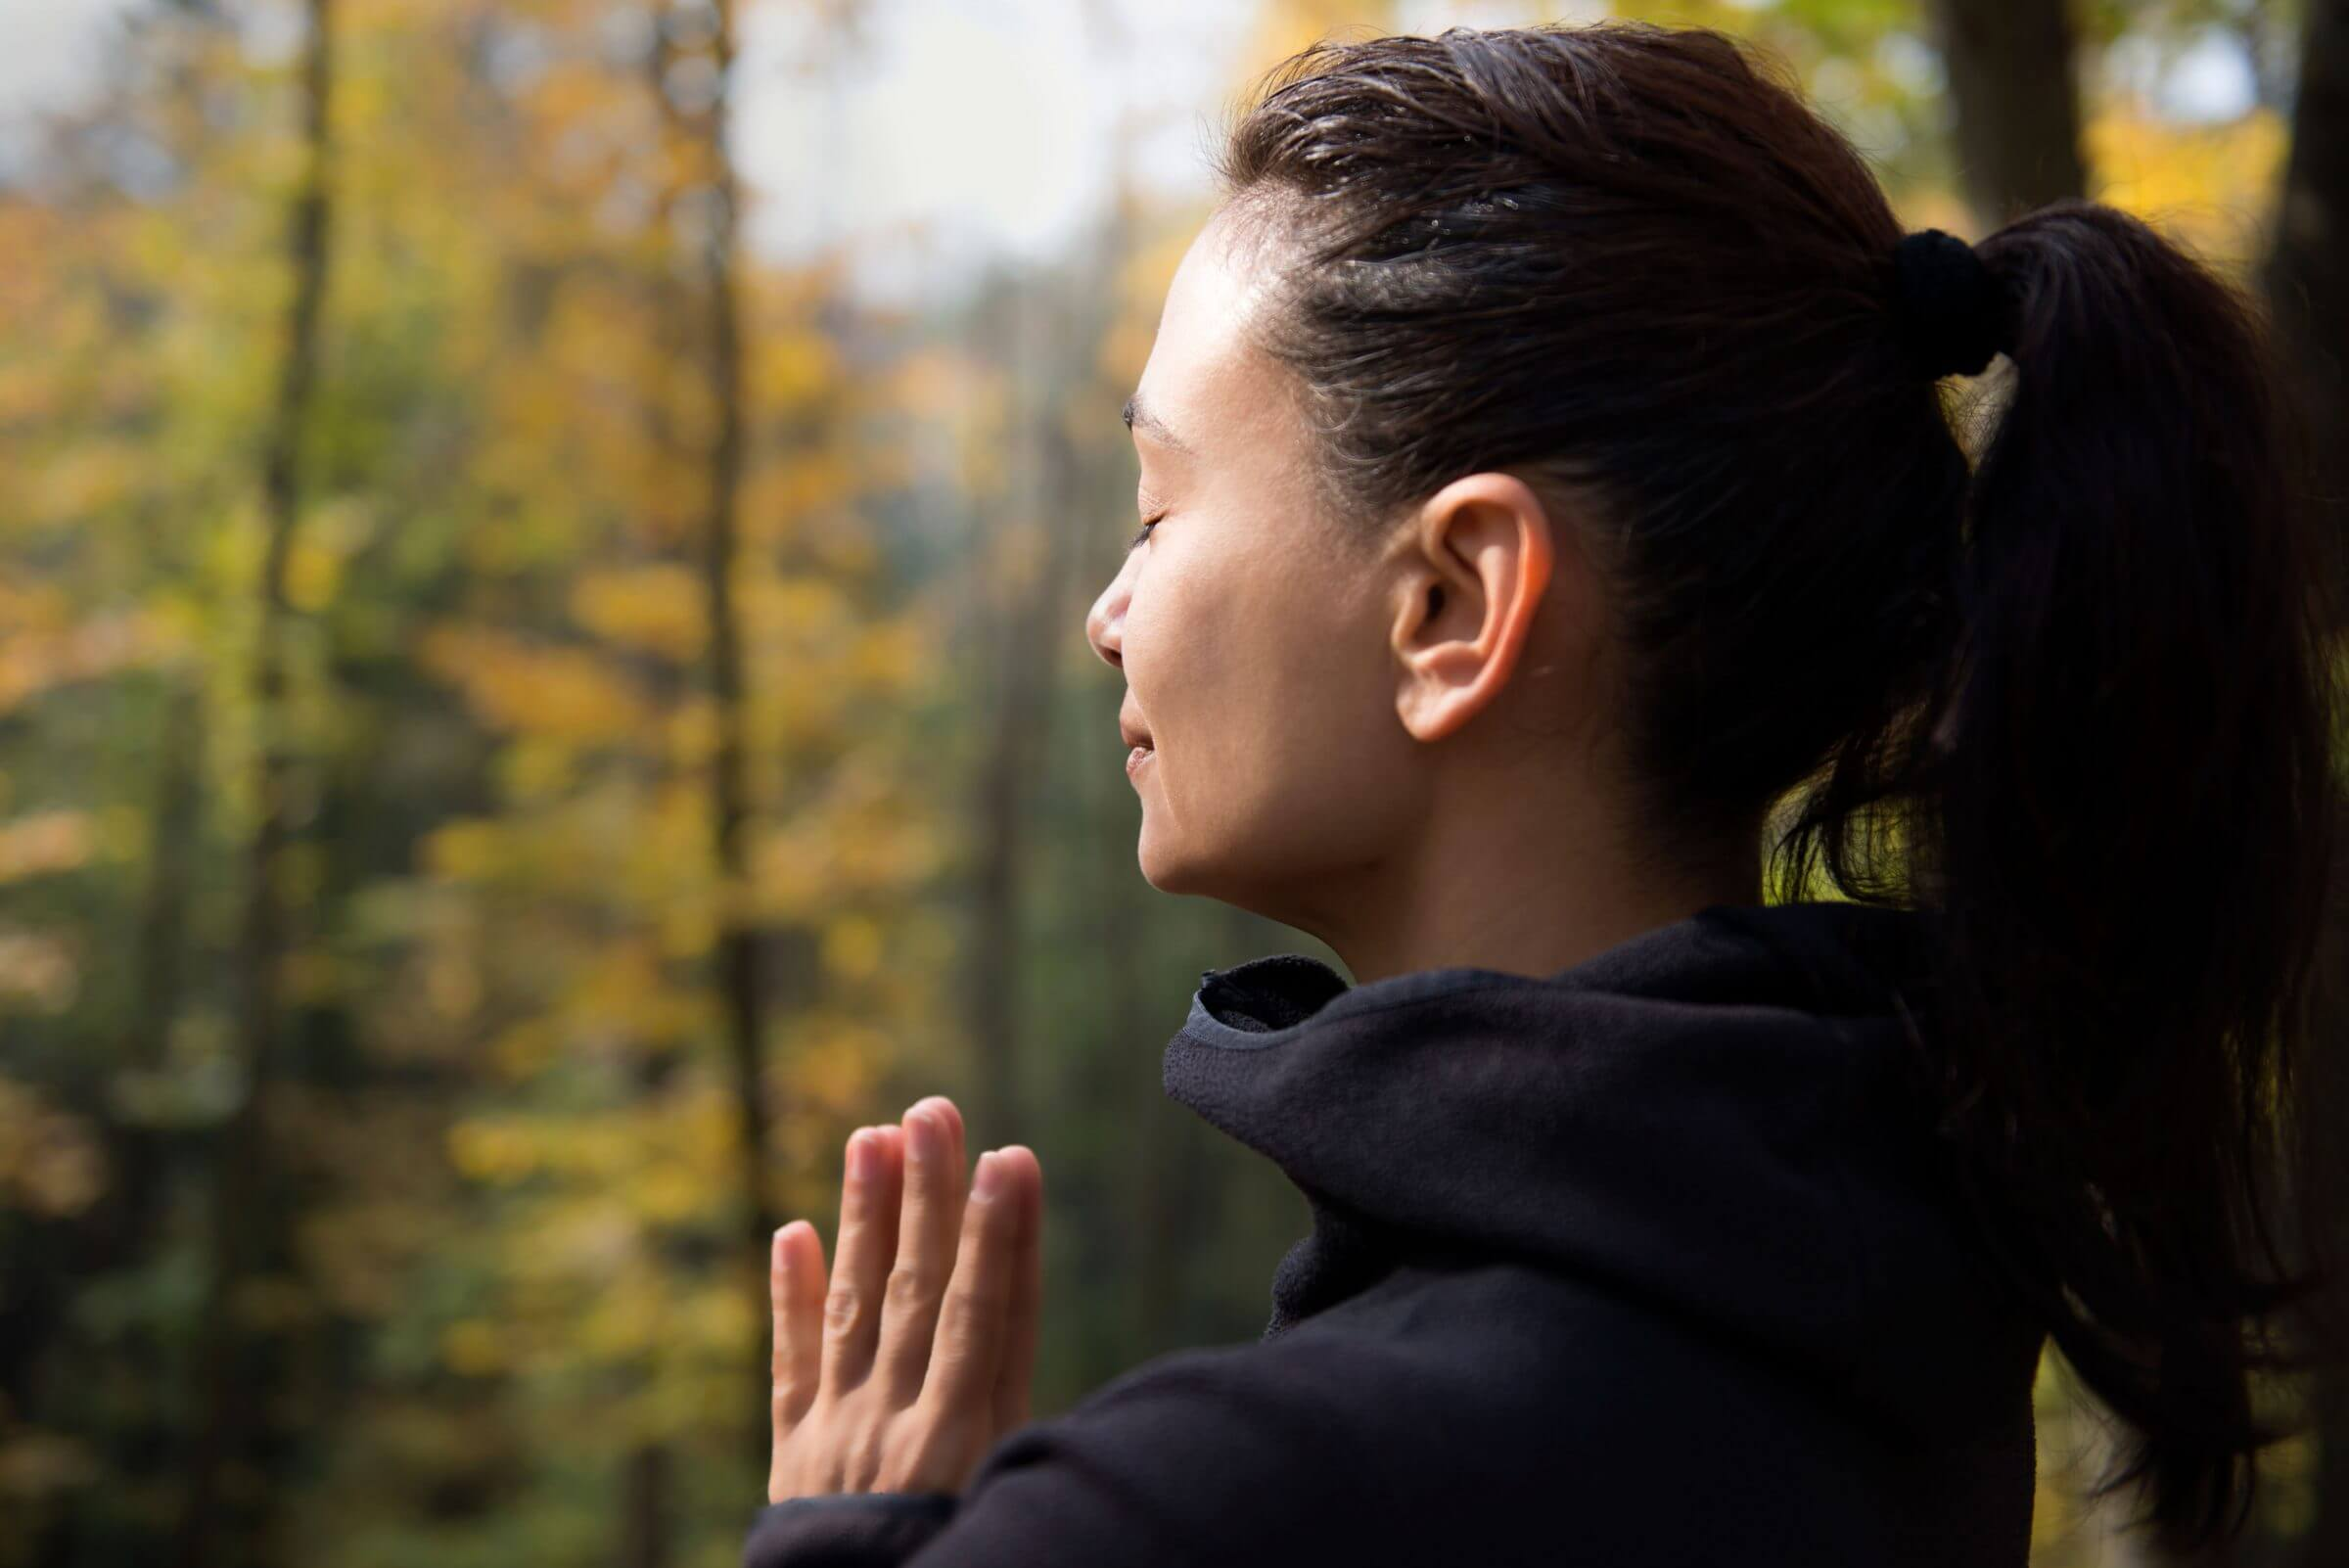 Practicing mindfulness in connection with Nature